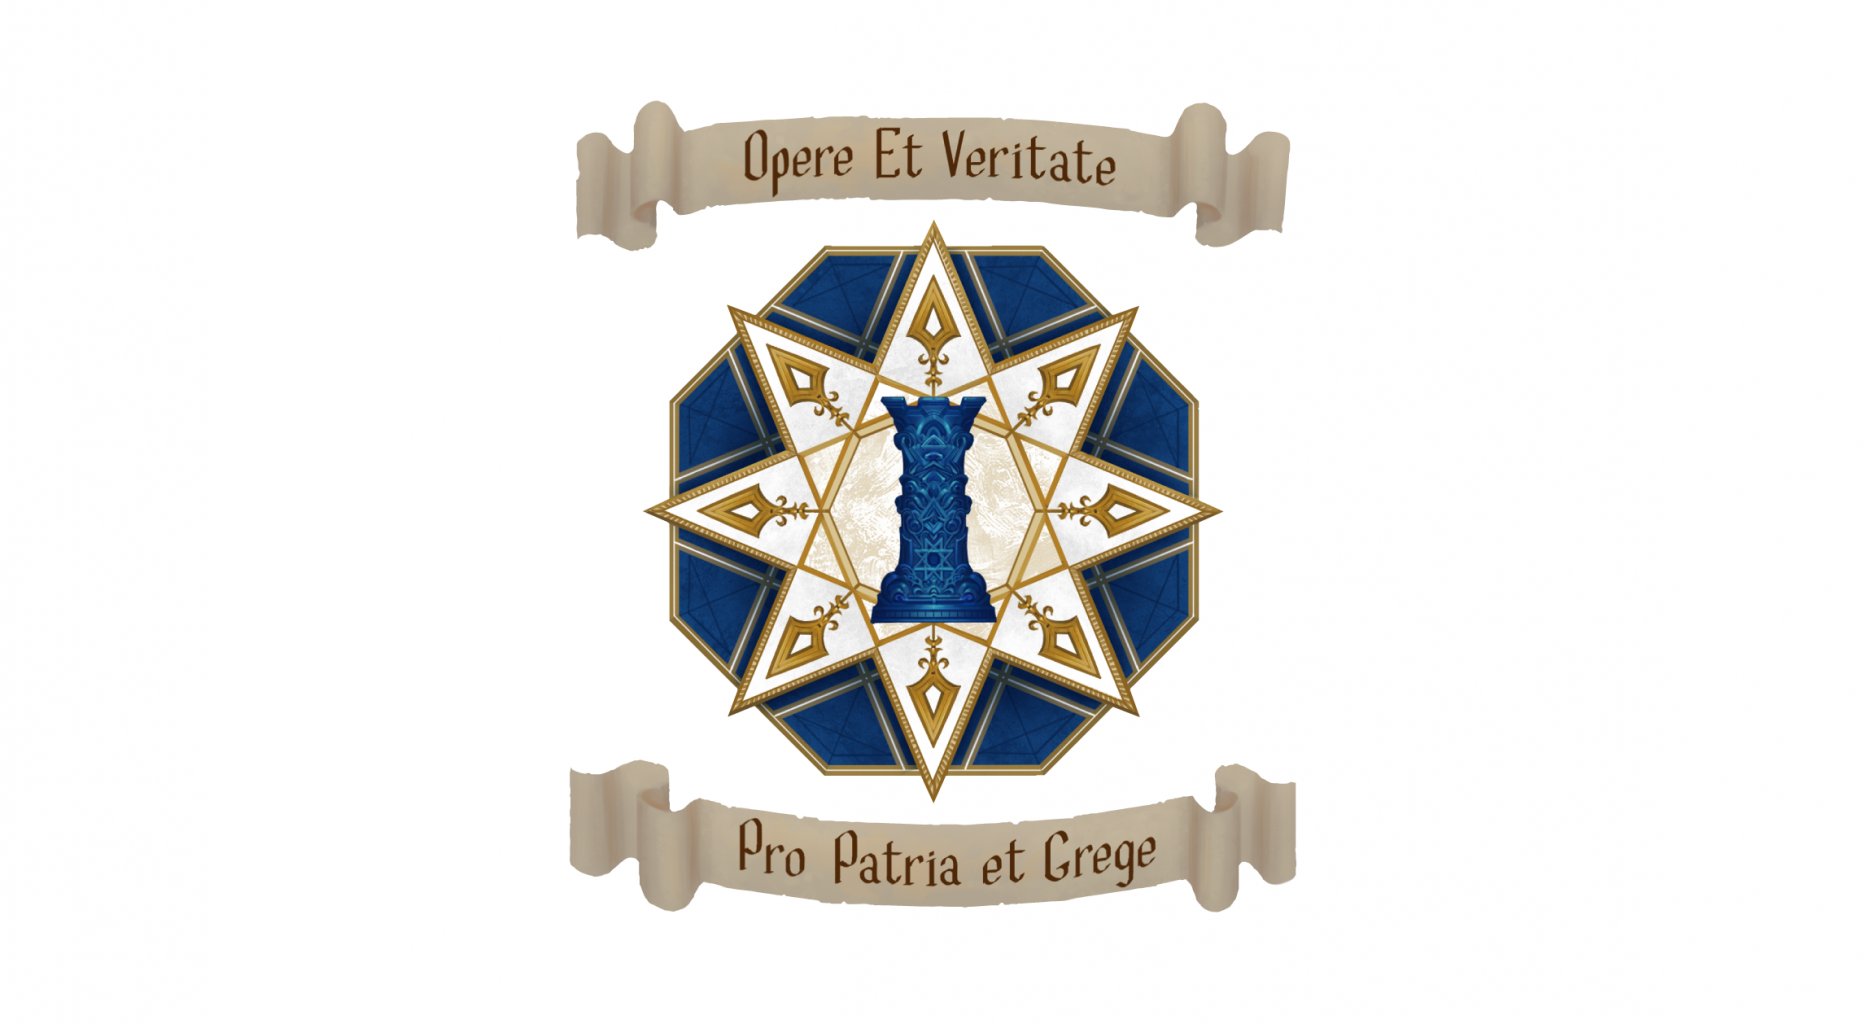 The Order of the Blue Rook